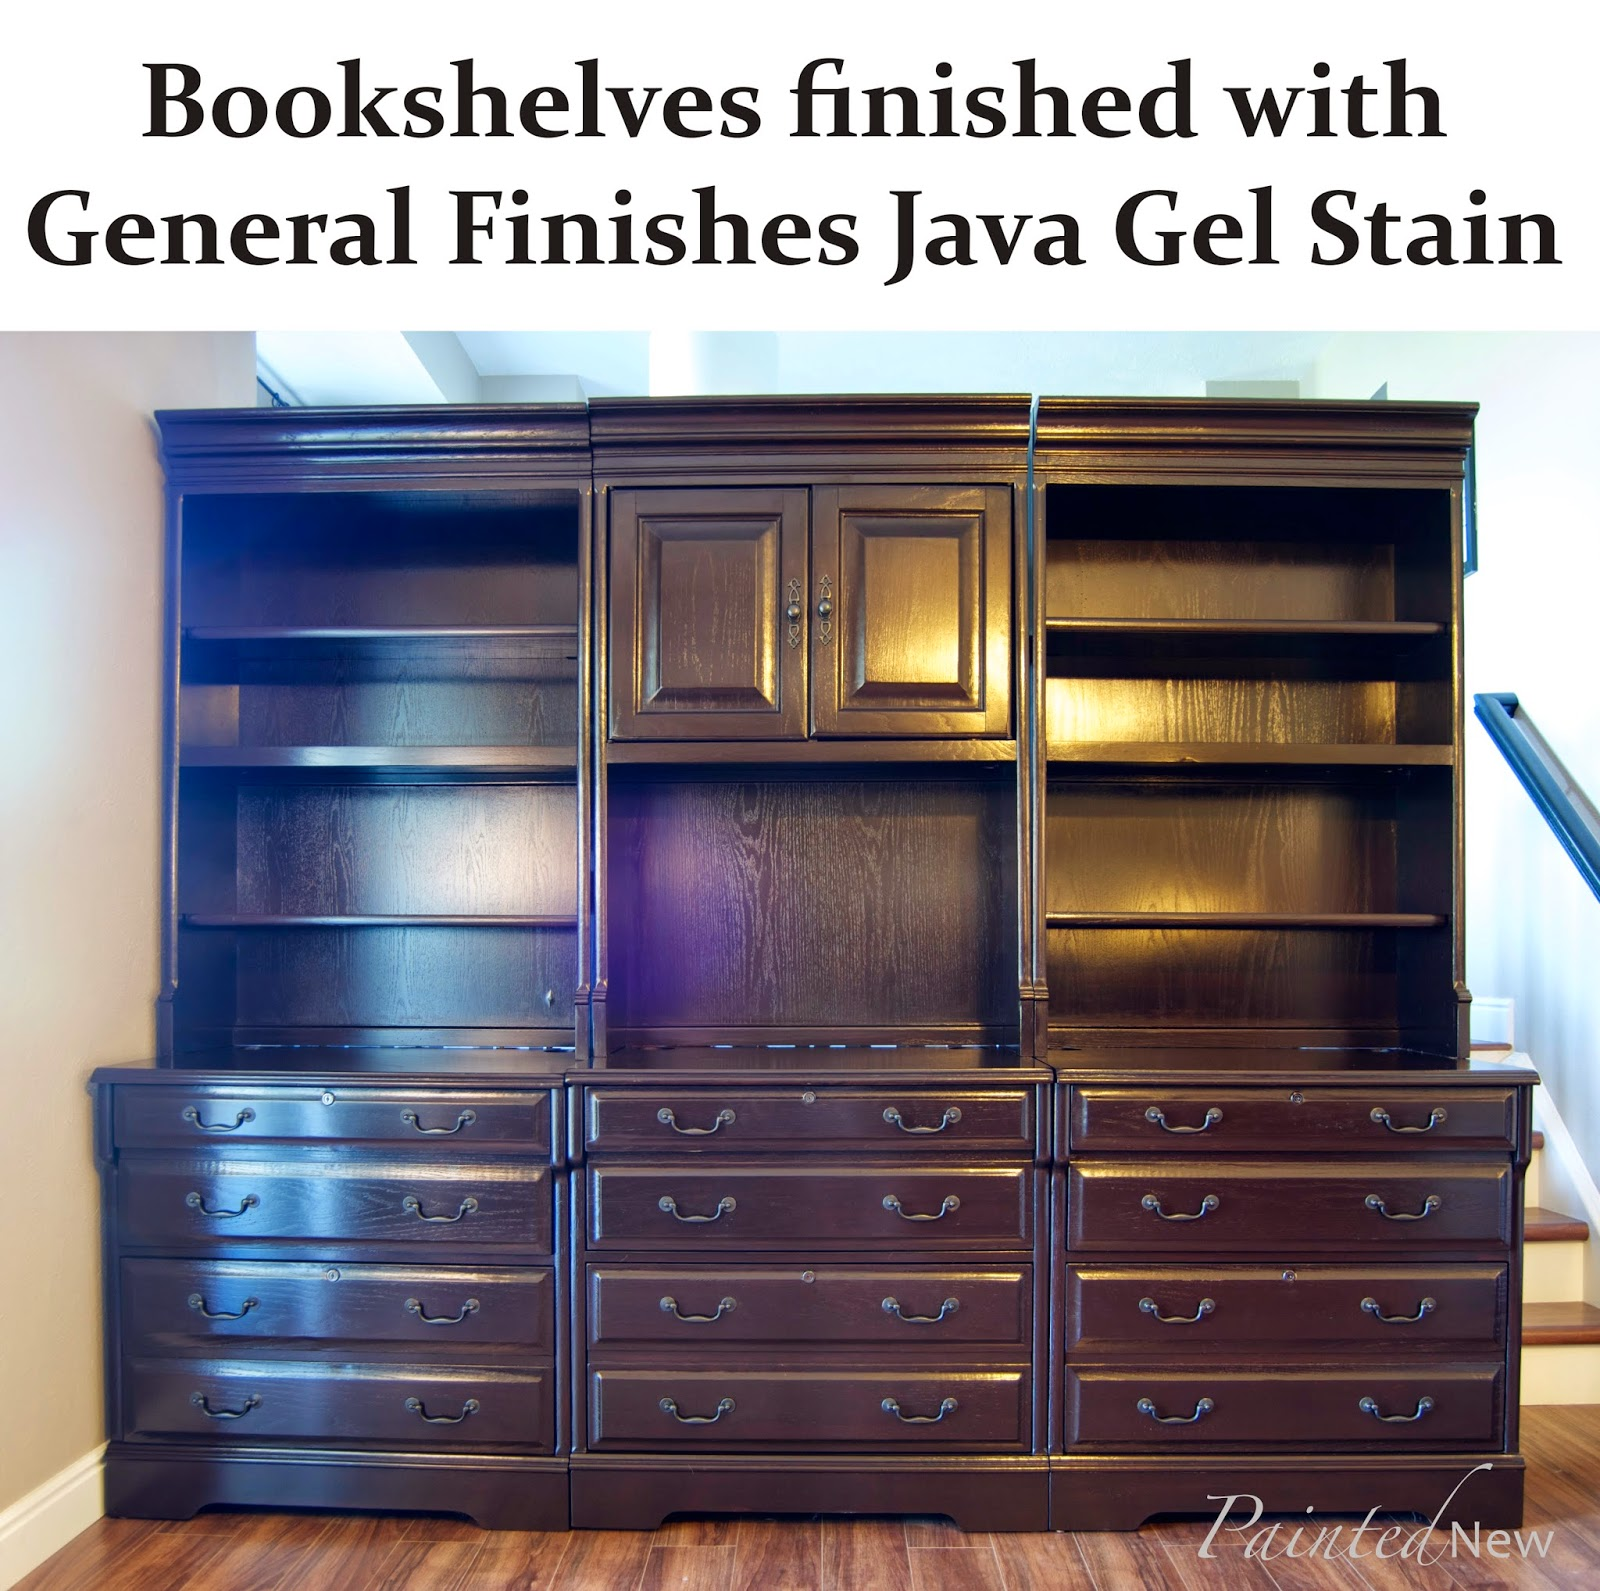 Gel Stain Kitchen Cabinets Espresso: Painted New: General Finishes Gel Stained Bookcases